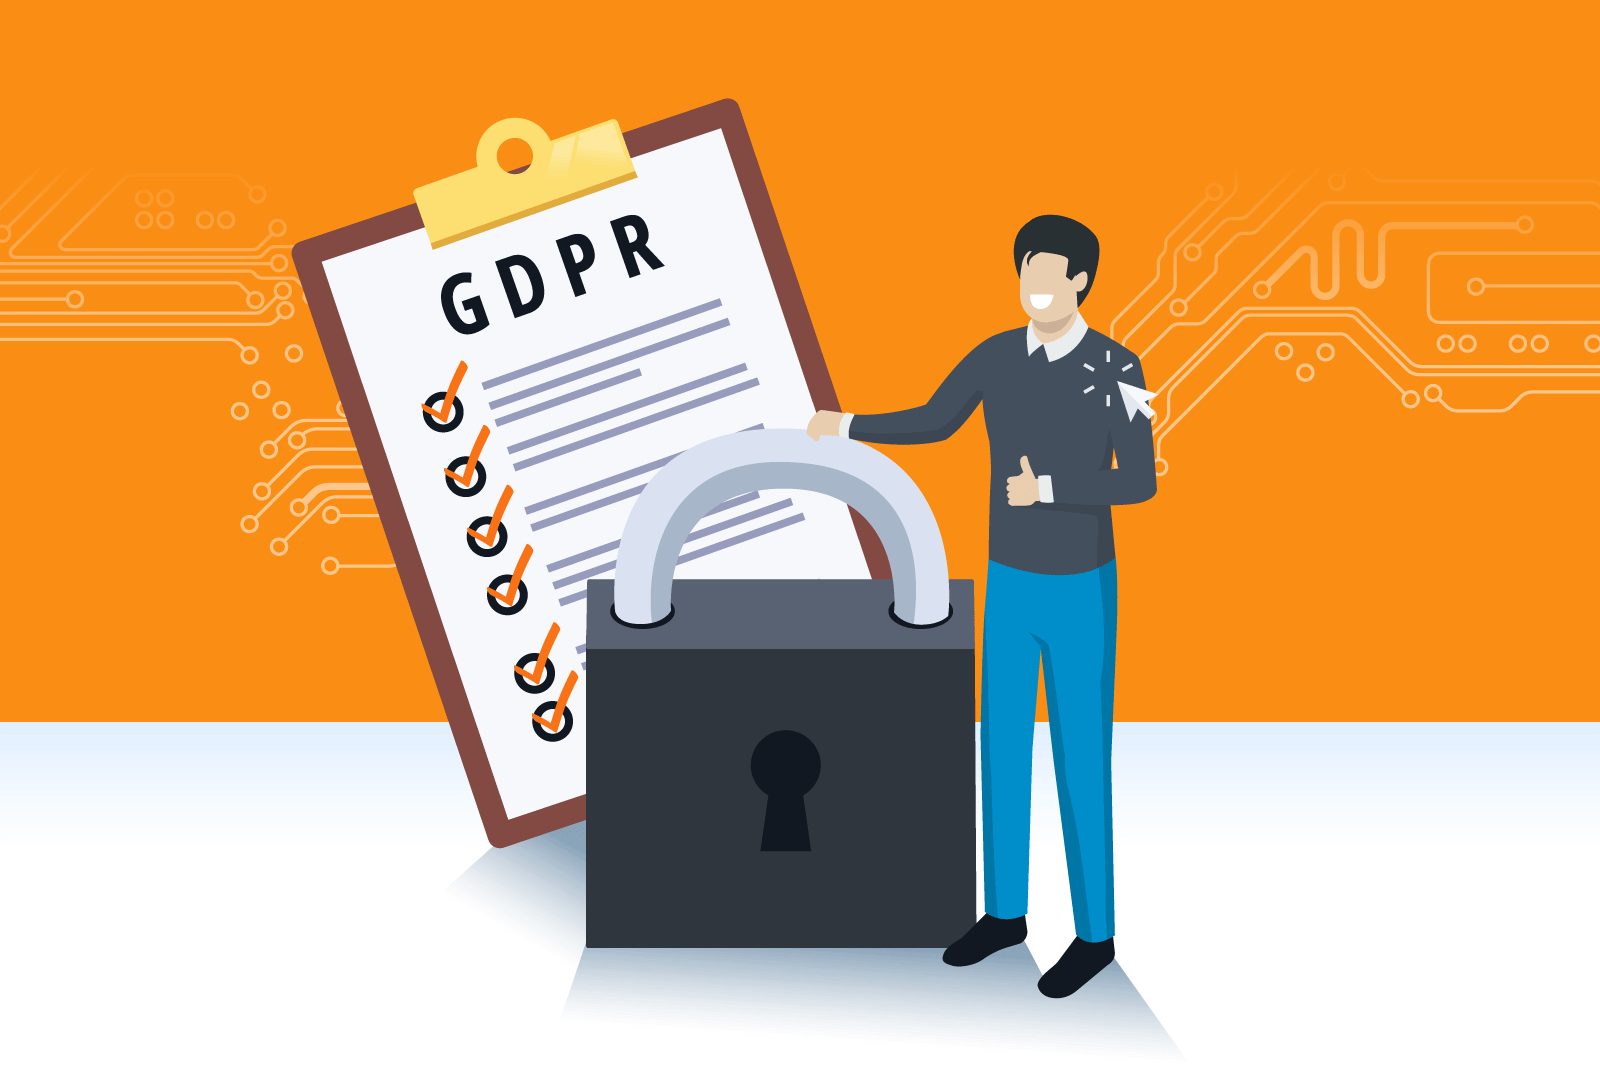 6 month of GDPR